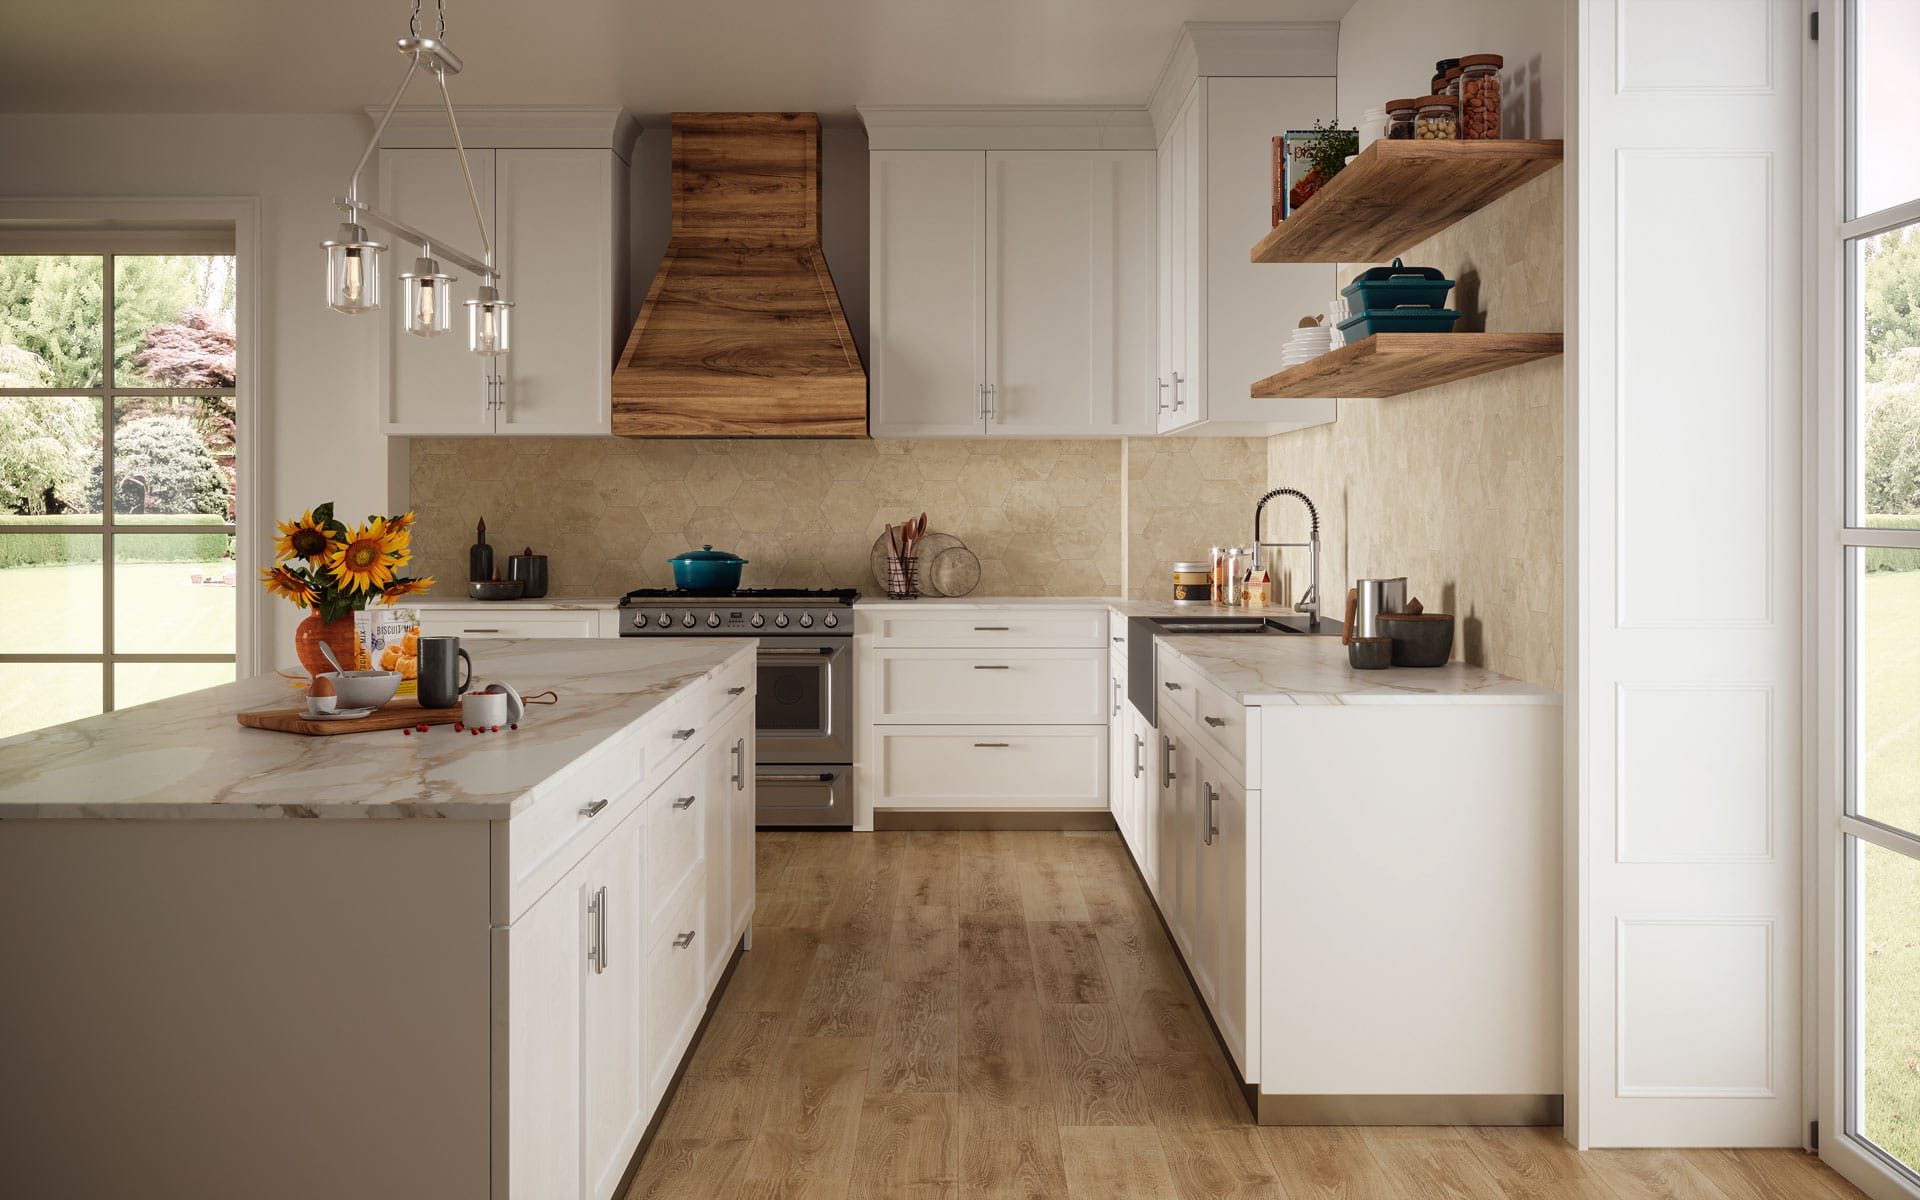 Atlas Concorde USA Exist Calm hexagon tiles deliver a creative wall and back splash in this kitchen.